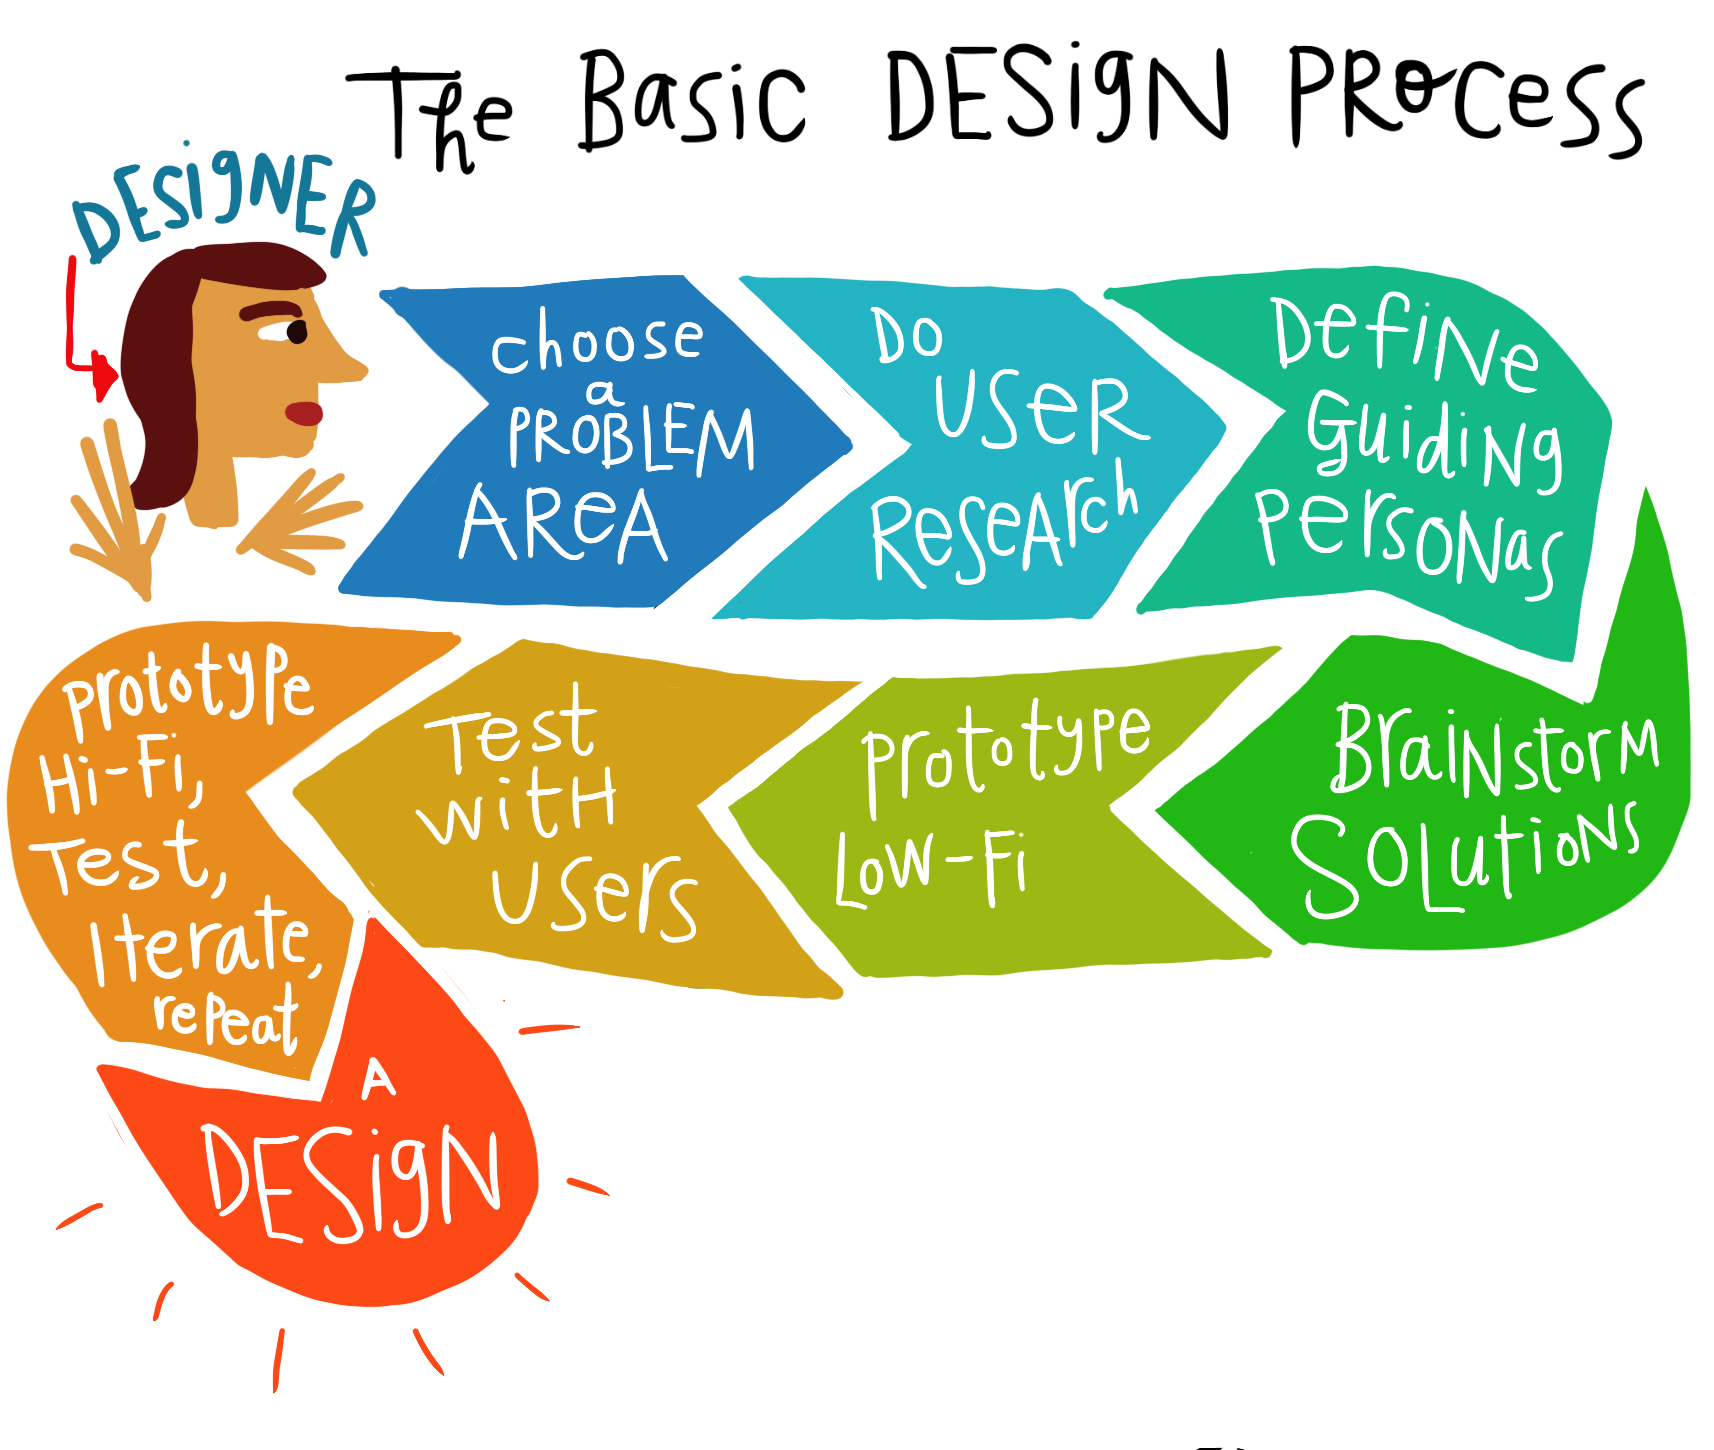 DESIGN notes - basic design process